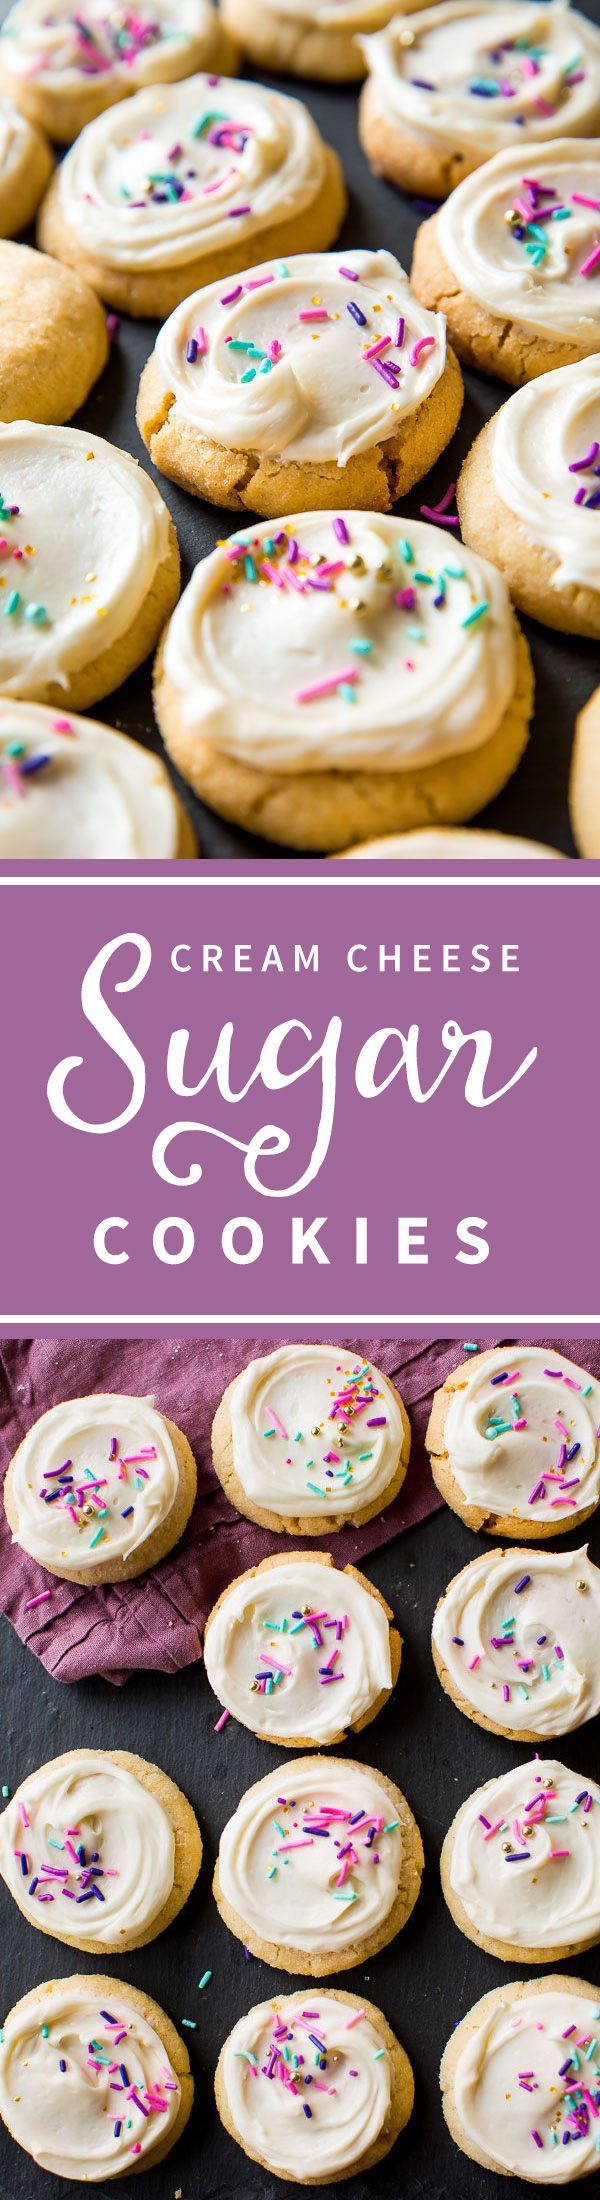 Creamy And Soft Cream Cheese Sugar Cookies With Vanilla Frosting And Birthday Sprinkles Soft Sugar Cookies Reci Cookie Bar Recipes Sweet Recipes Yummy Cookies